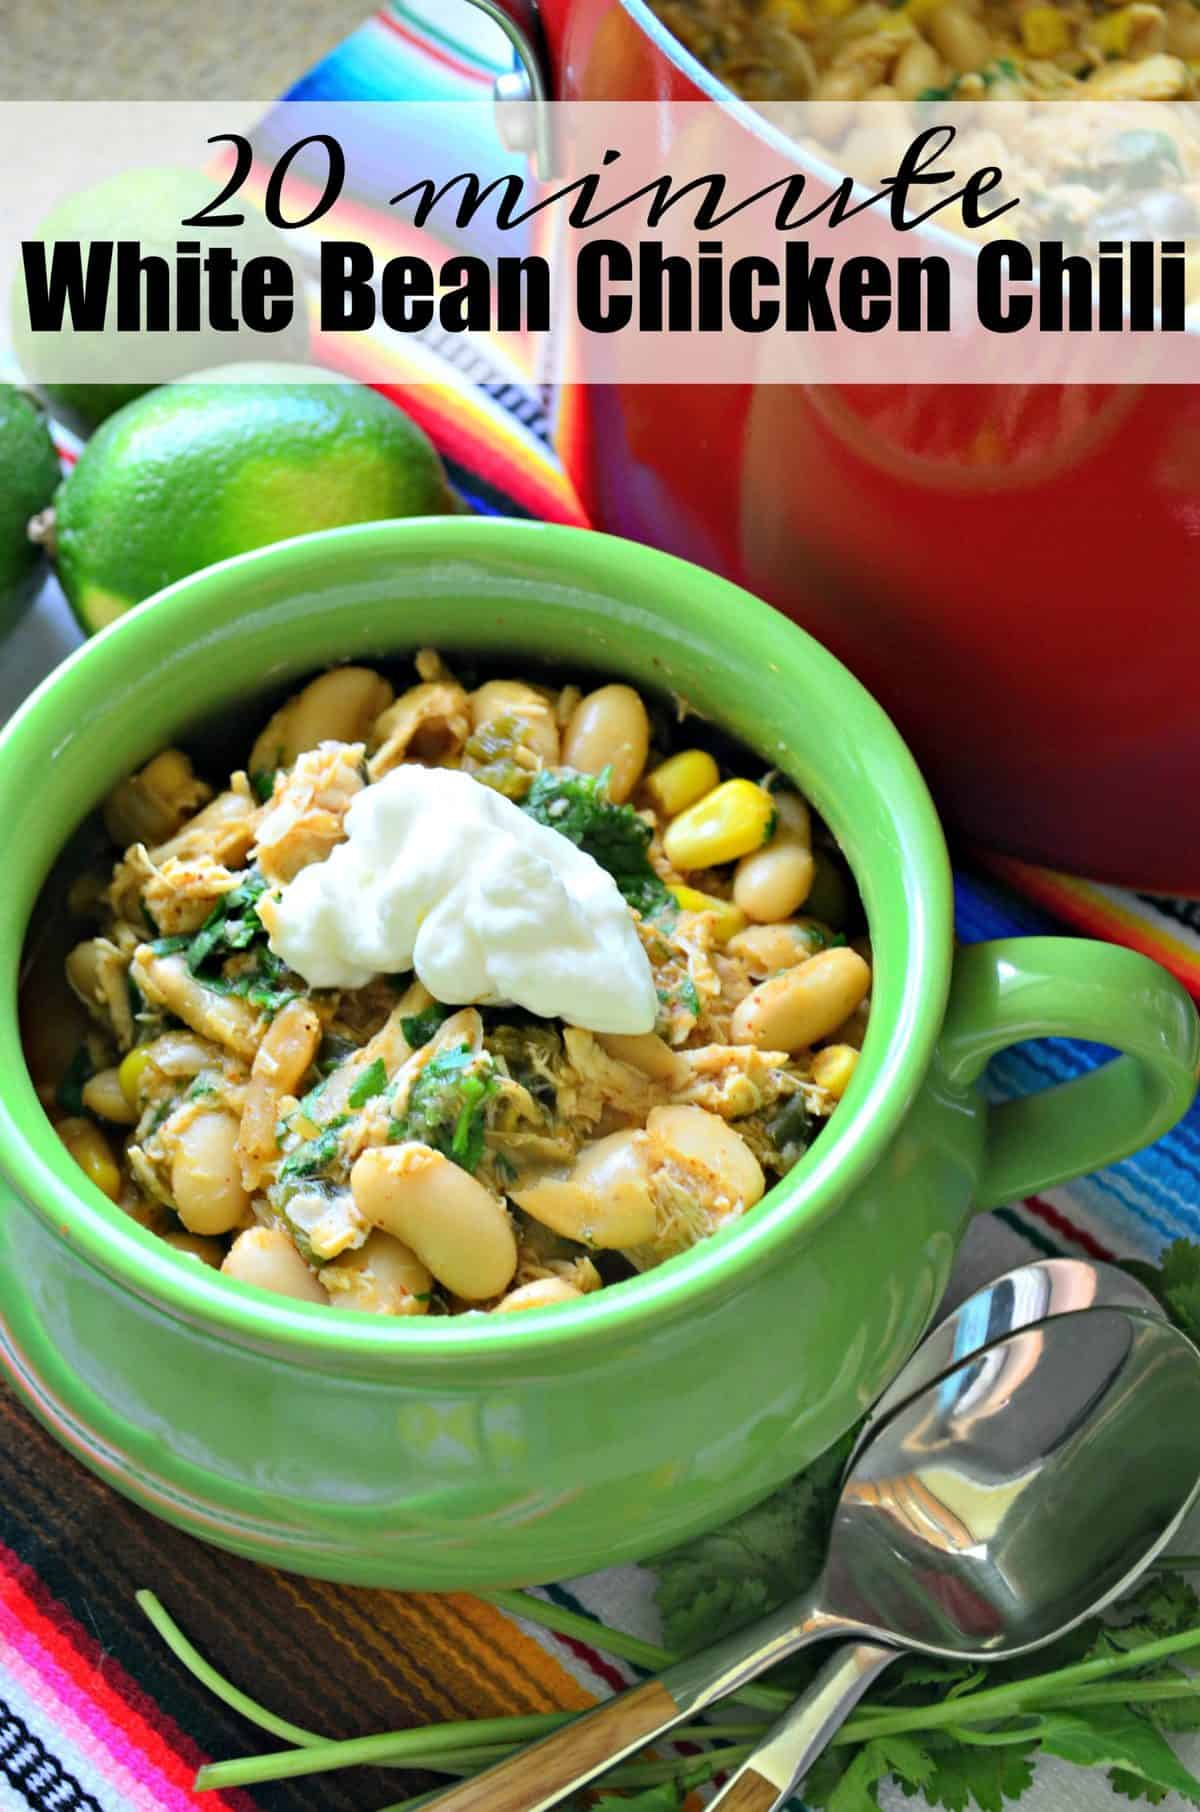 White Bean Chicken Chili topped with green herbs and sour cream in a small green mug next to spoons.